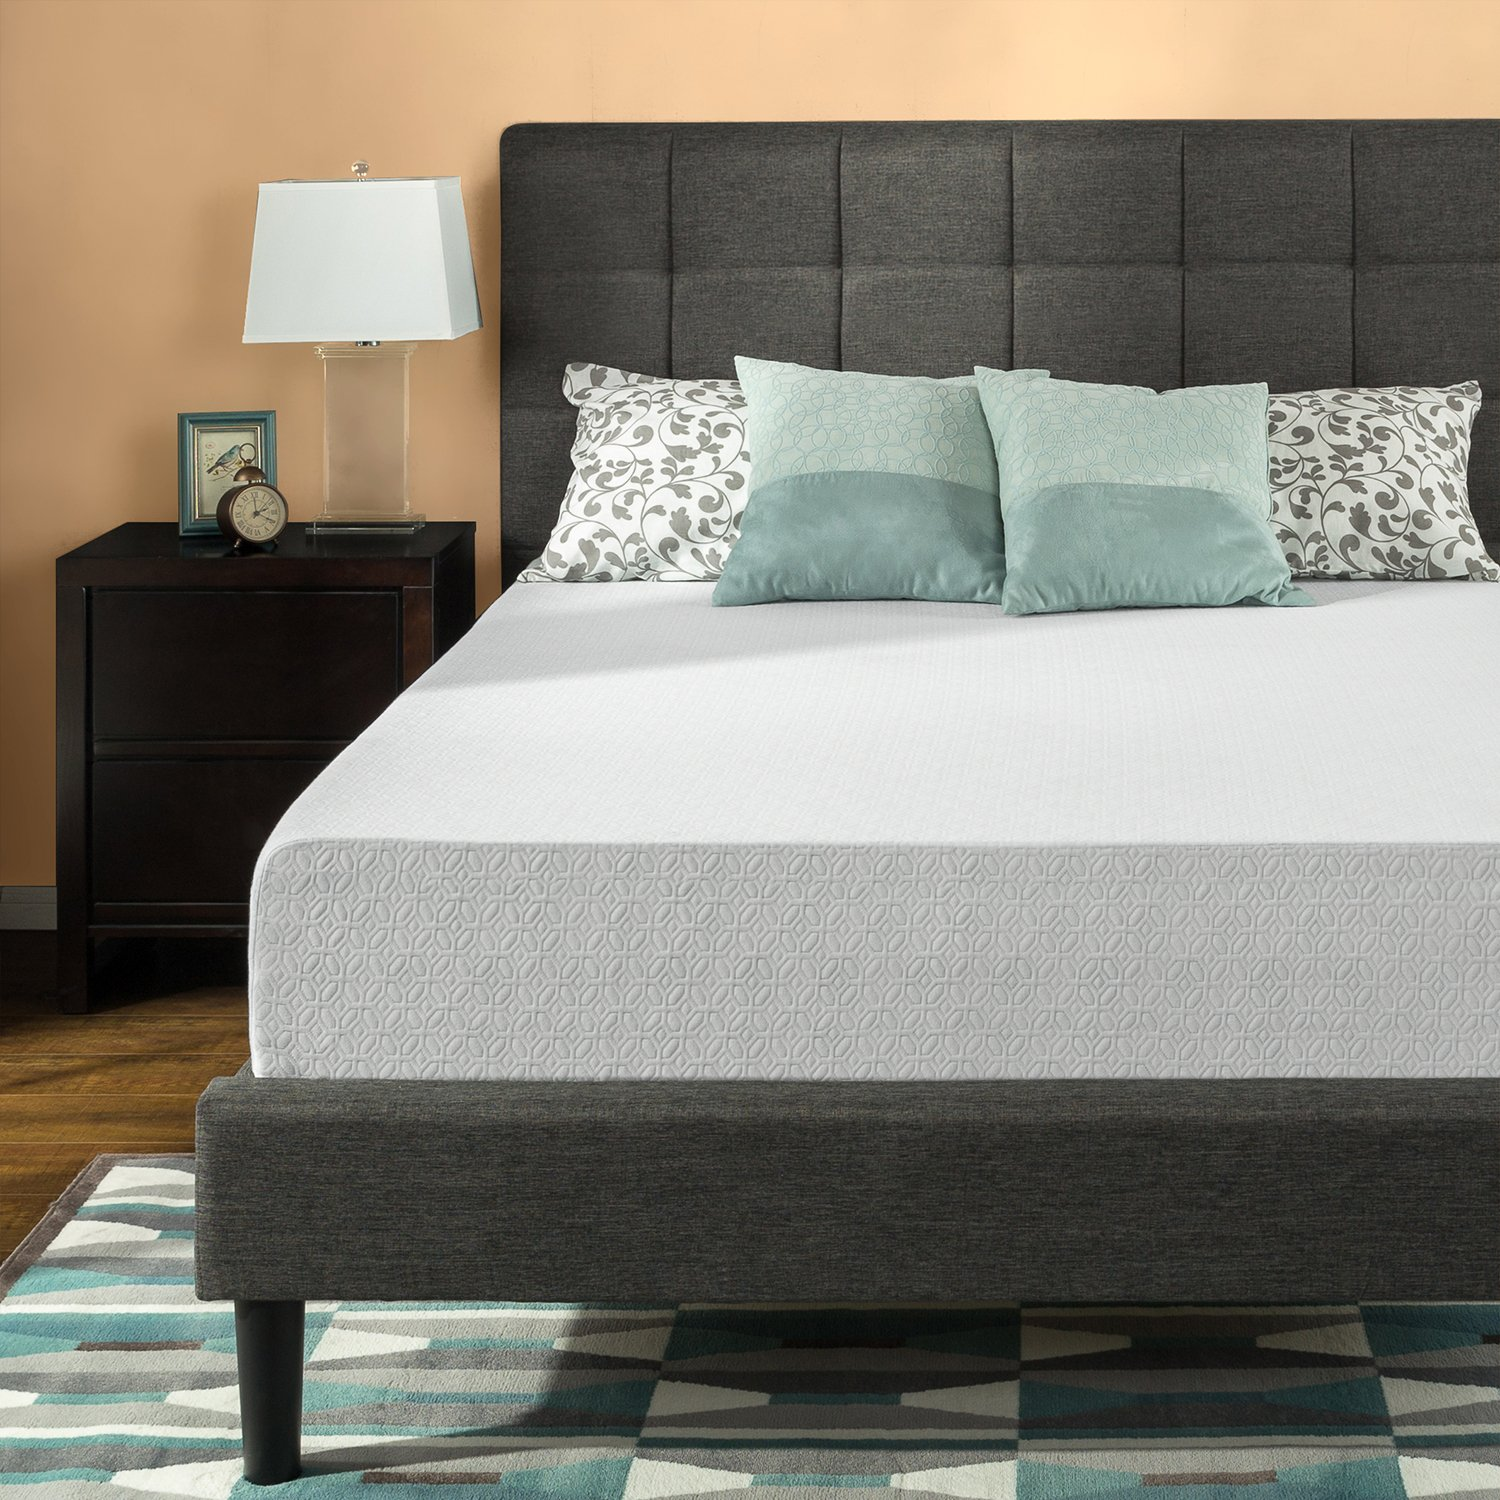 Best Mattresses of 2020